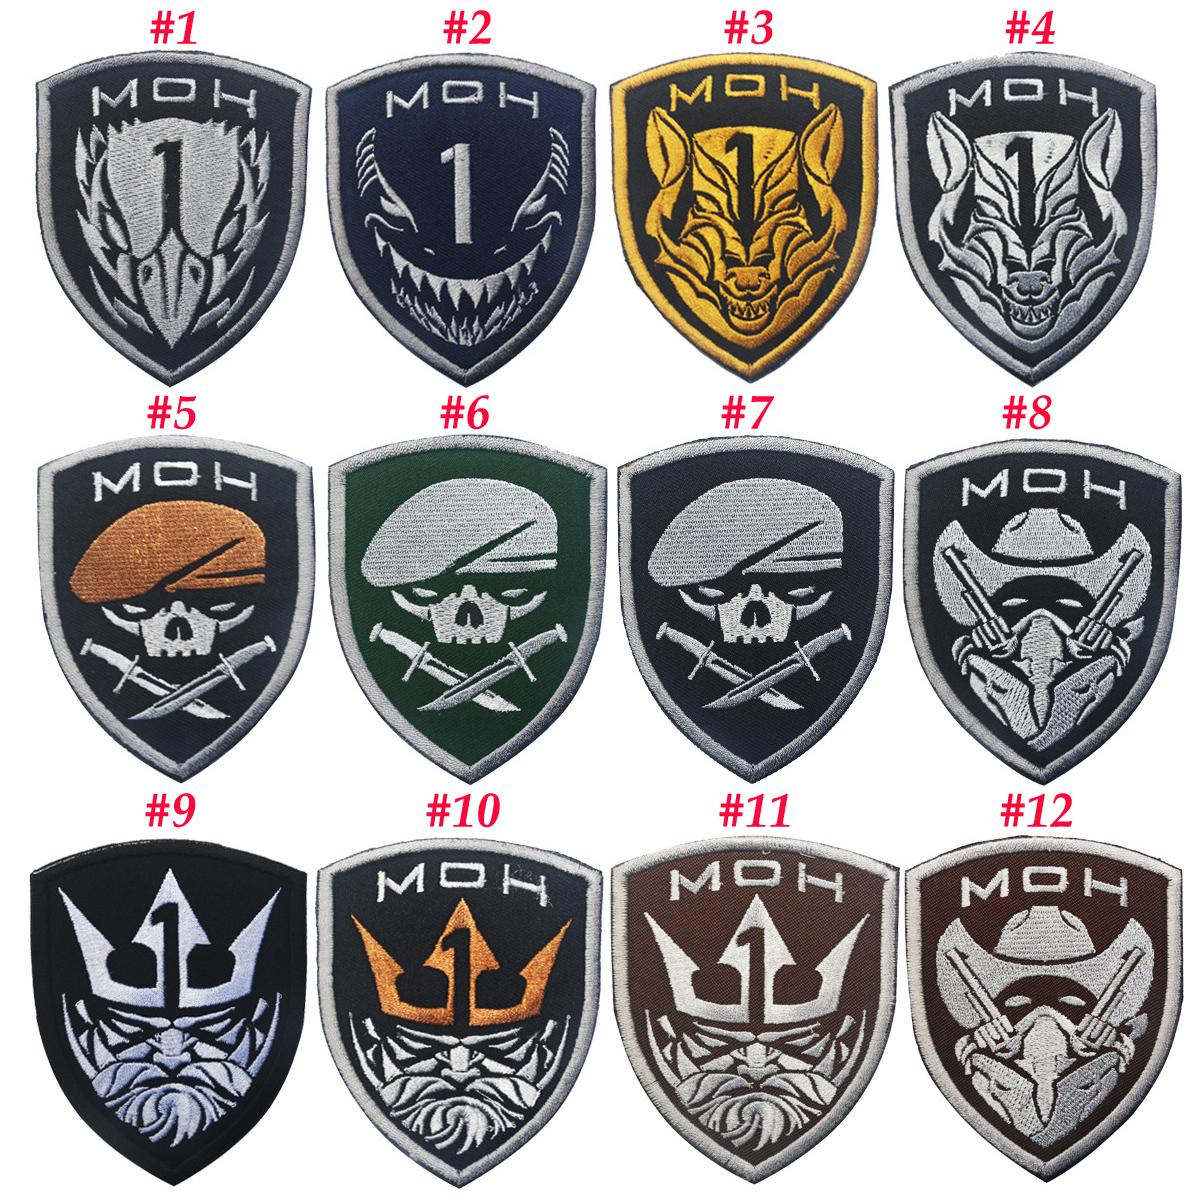 Custom patch Project Medal of honor MOH golden eagle wolf skull Tactical  morale patches army embroidery patches